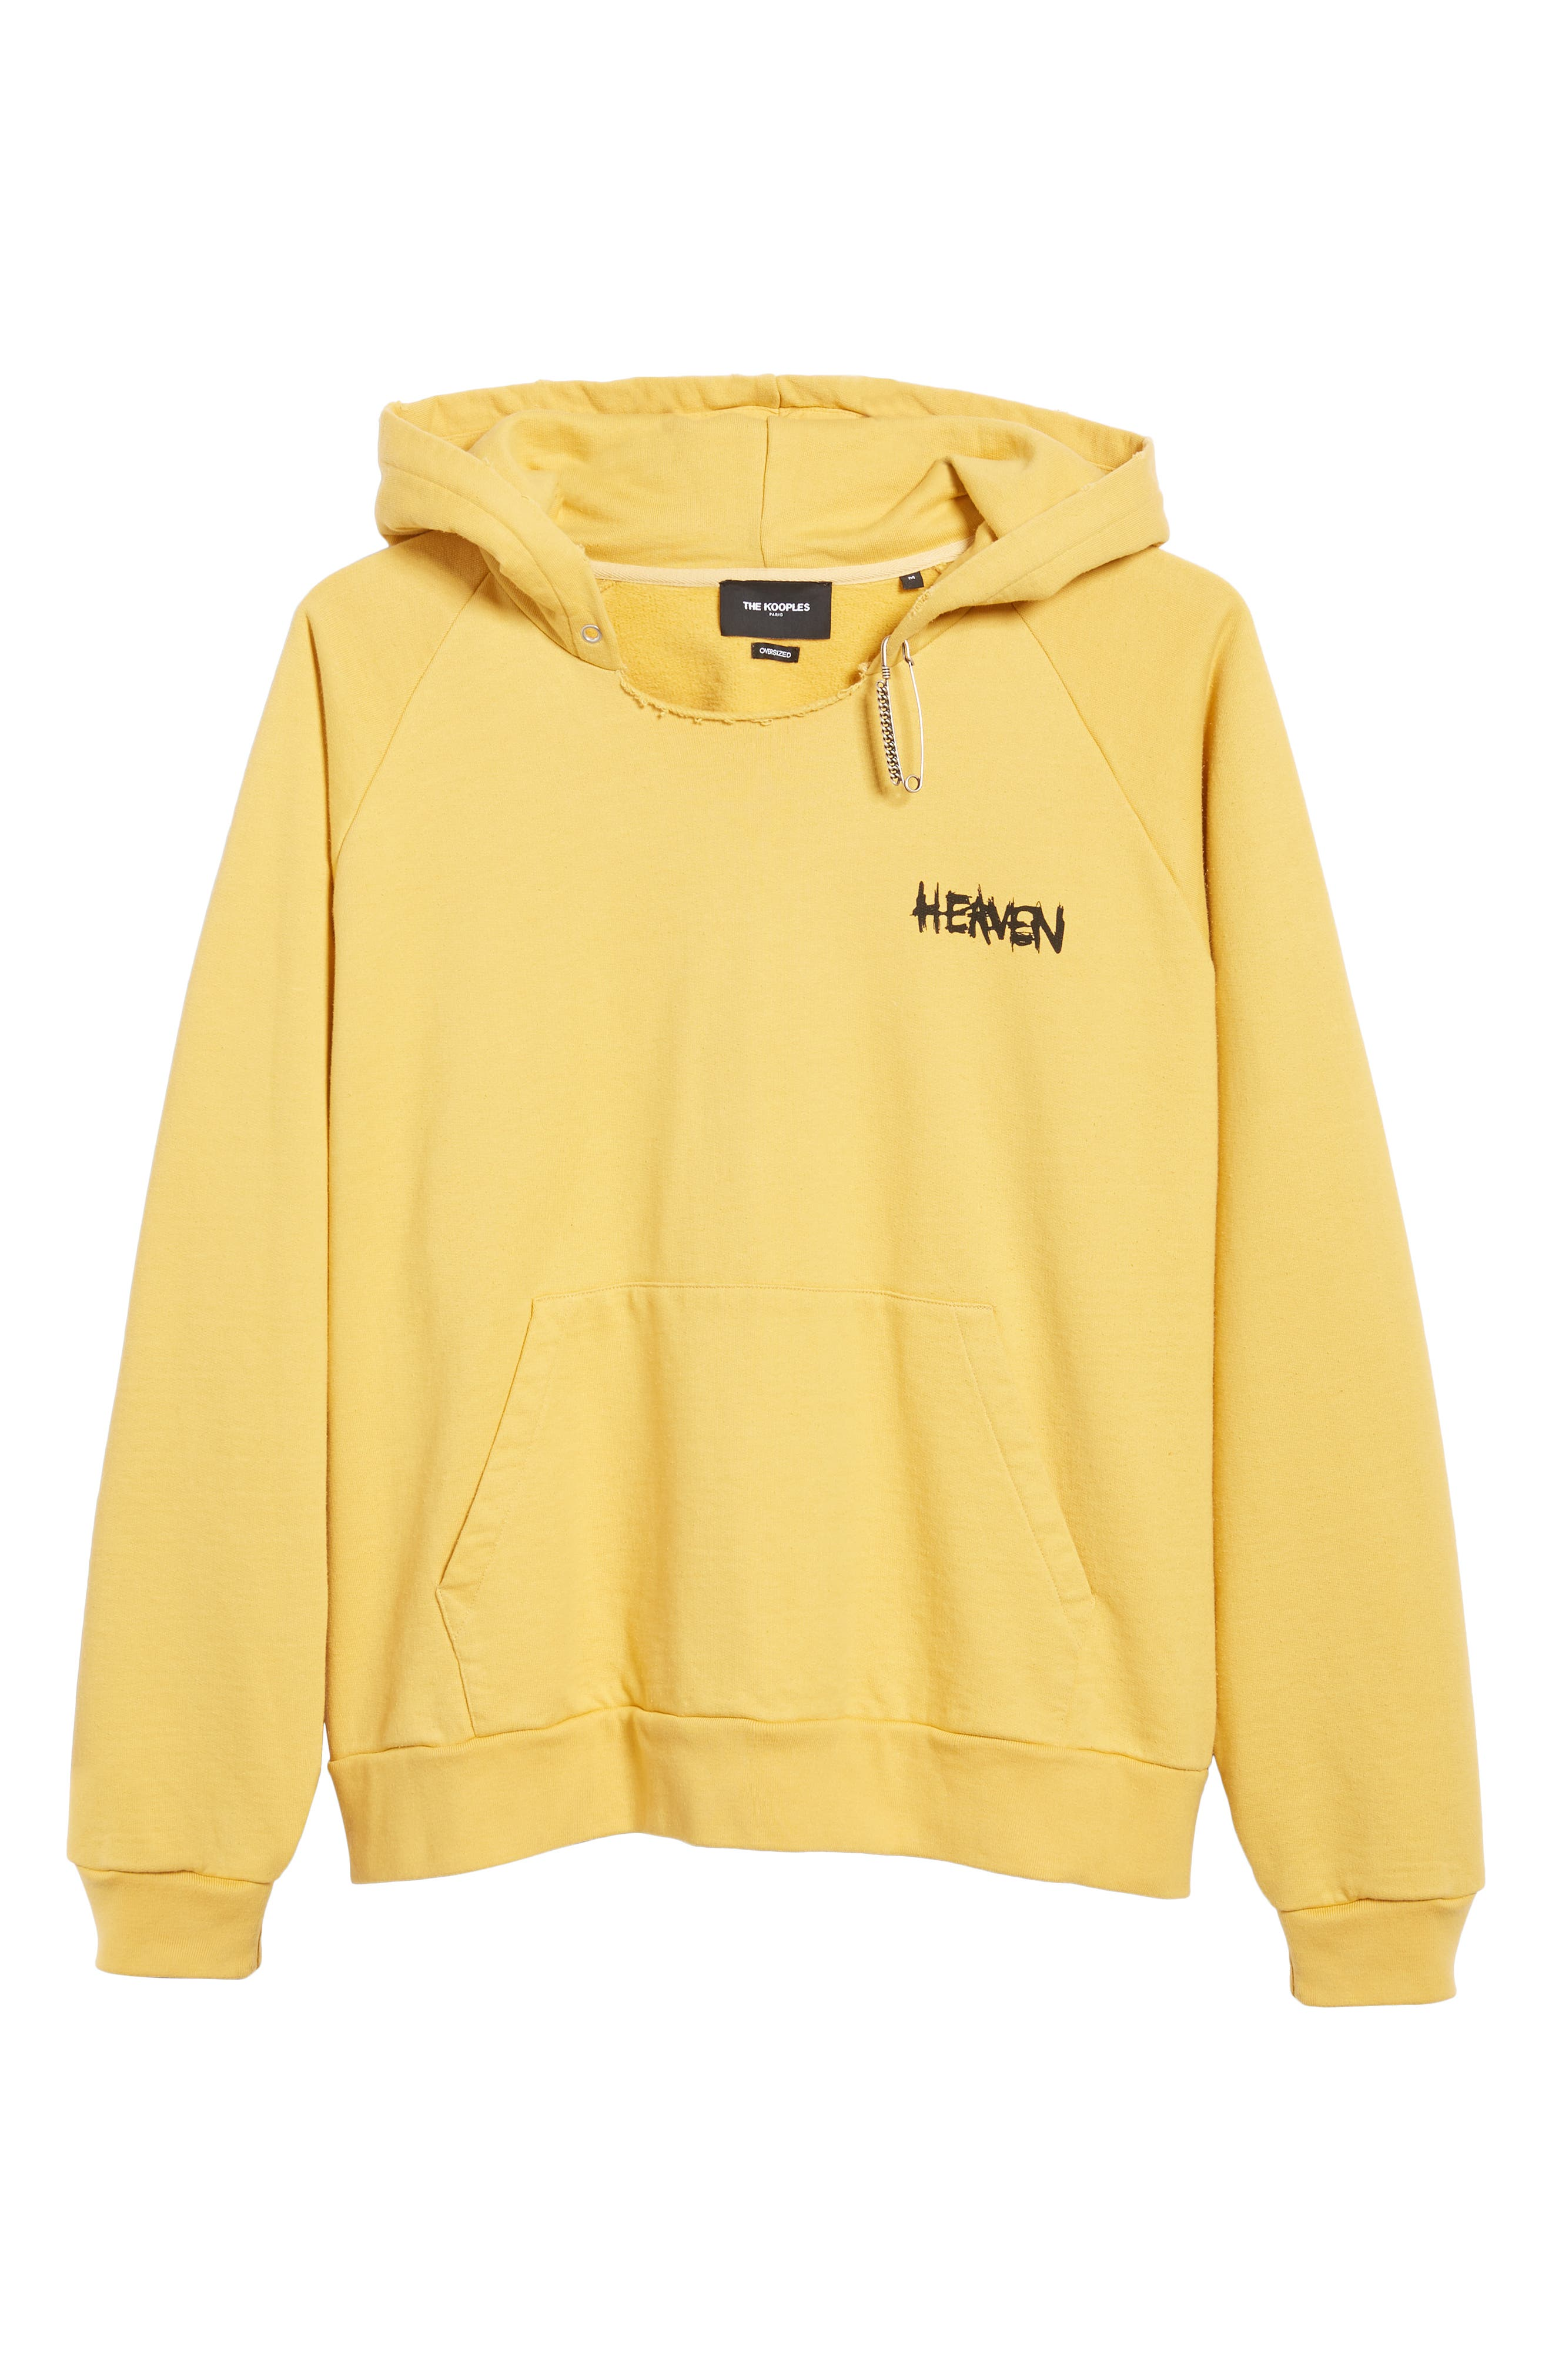 THE KOOPLES, Oversize Hoodie, Alternate thumbnail 6, color, YELLOW